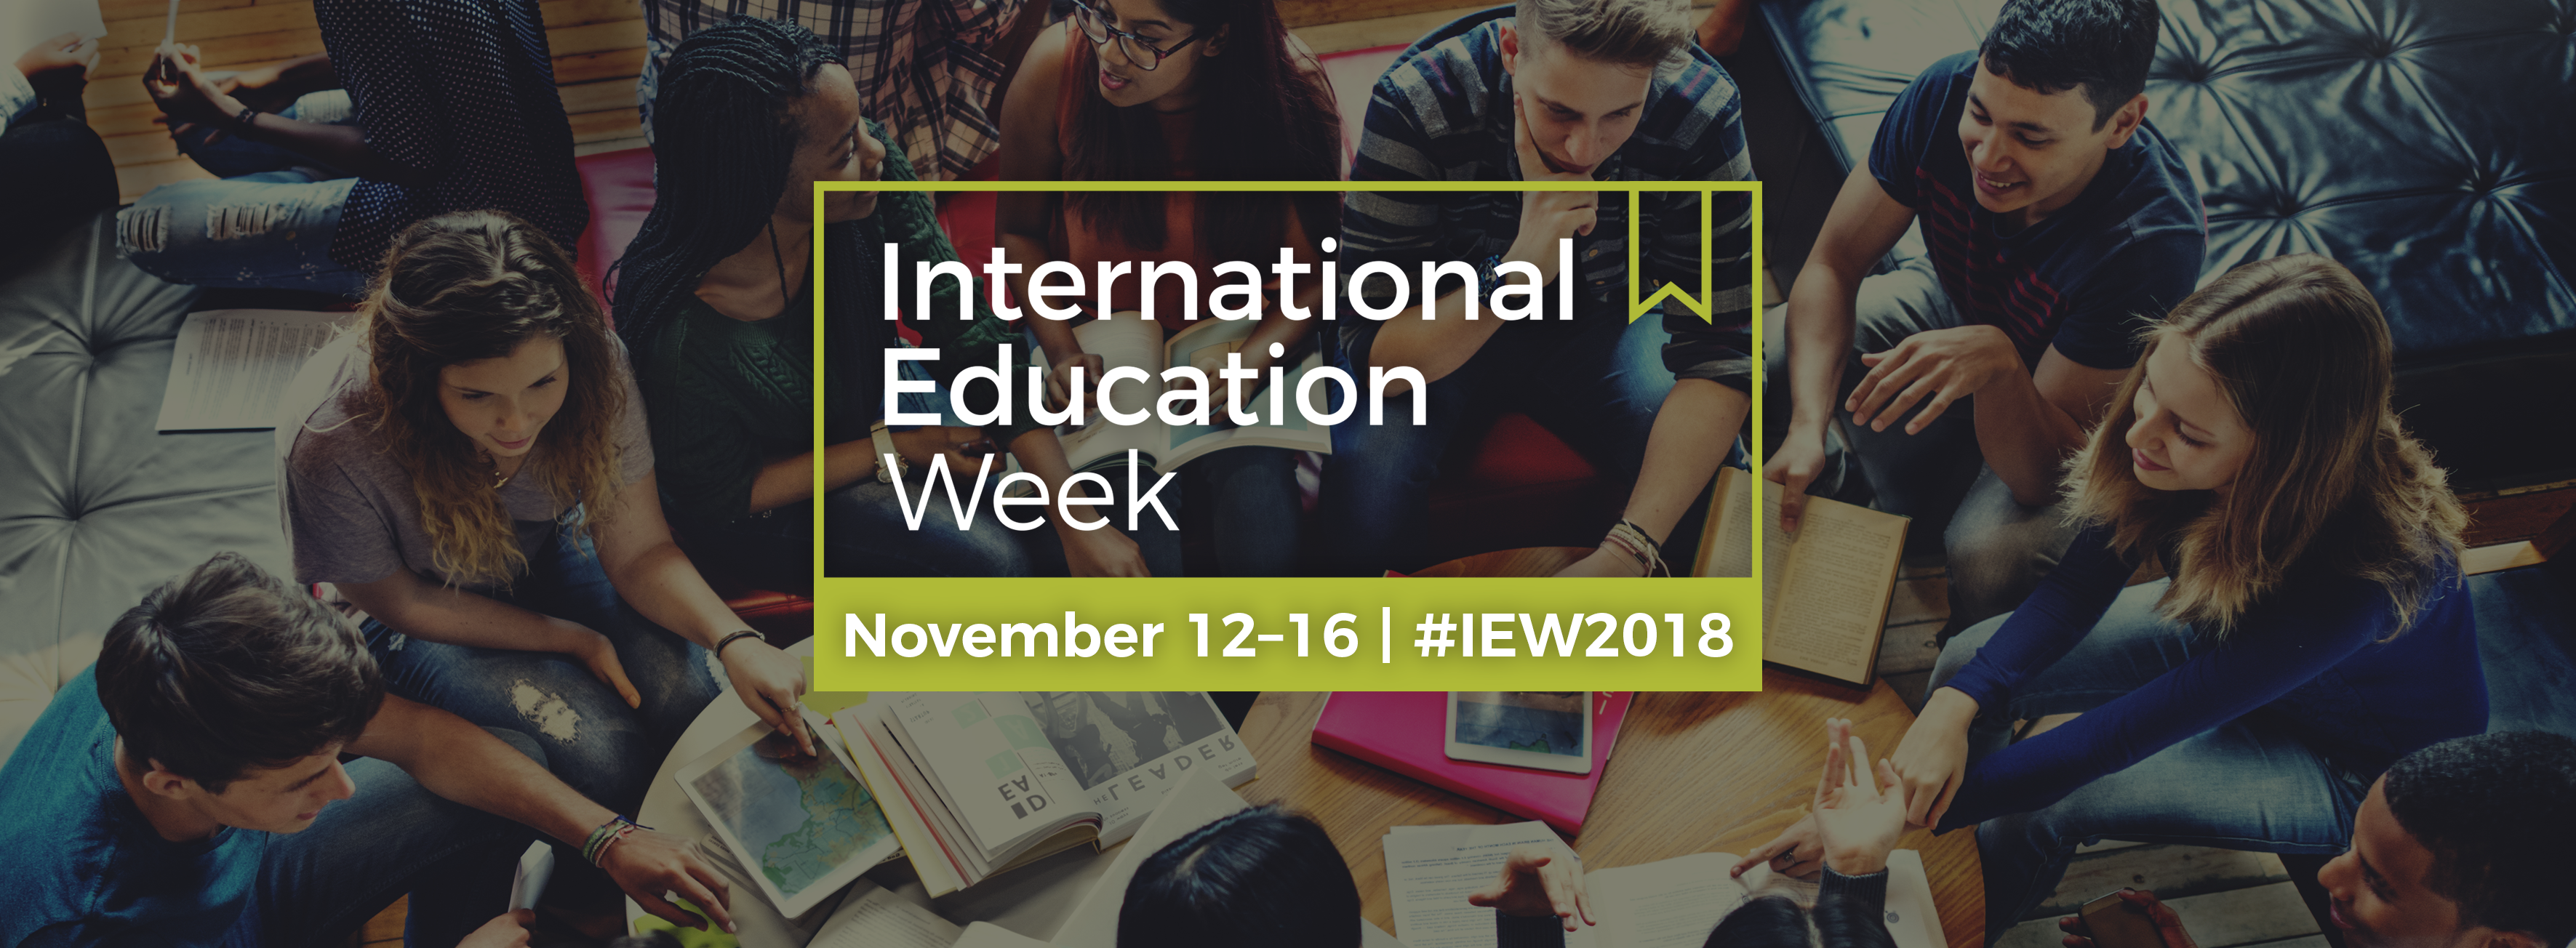 International Education Week is a joint initiative of the U.S. Department of State and the U.S. Department of Education to promote programs that prepare Americans for global interactions.